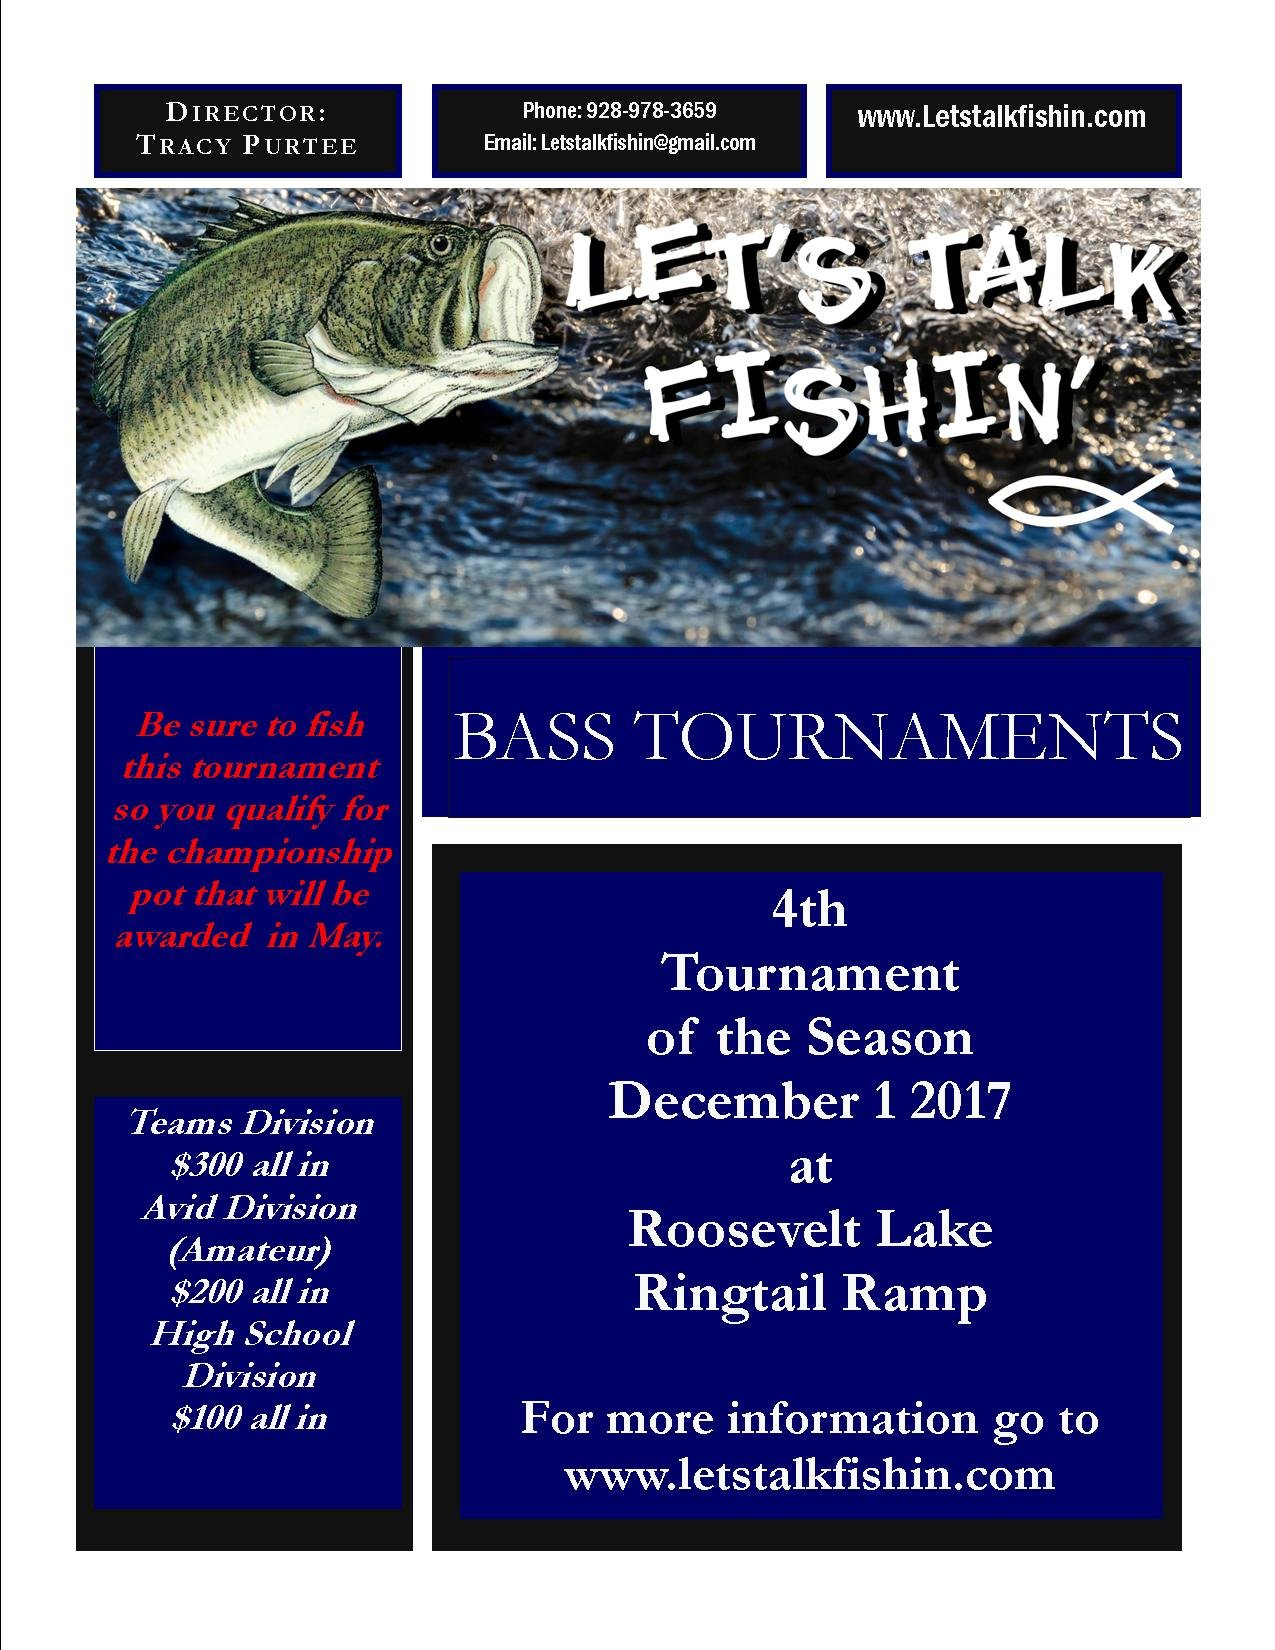 Click image for larger version  Name:4th Tournament.jpg Views:1125 Size:285.4 KB ID:96770